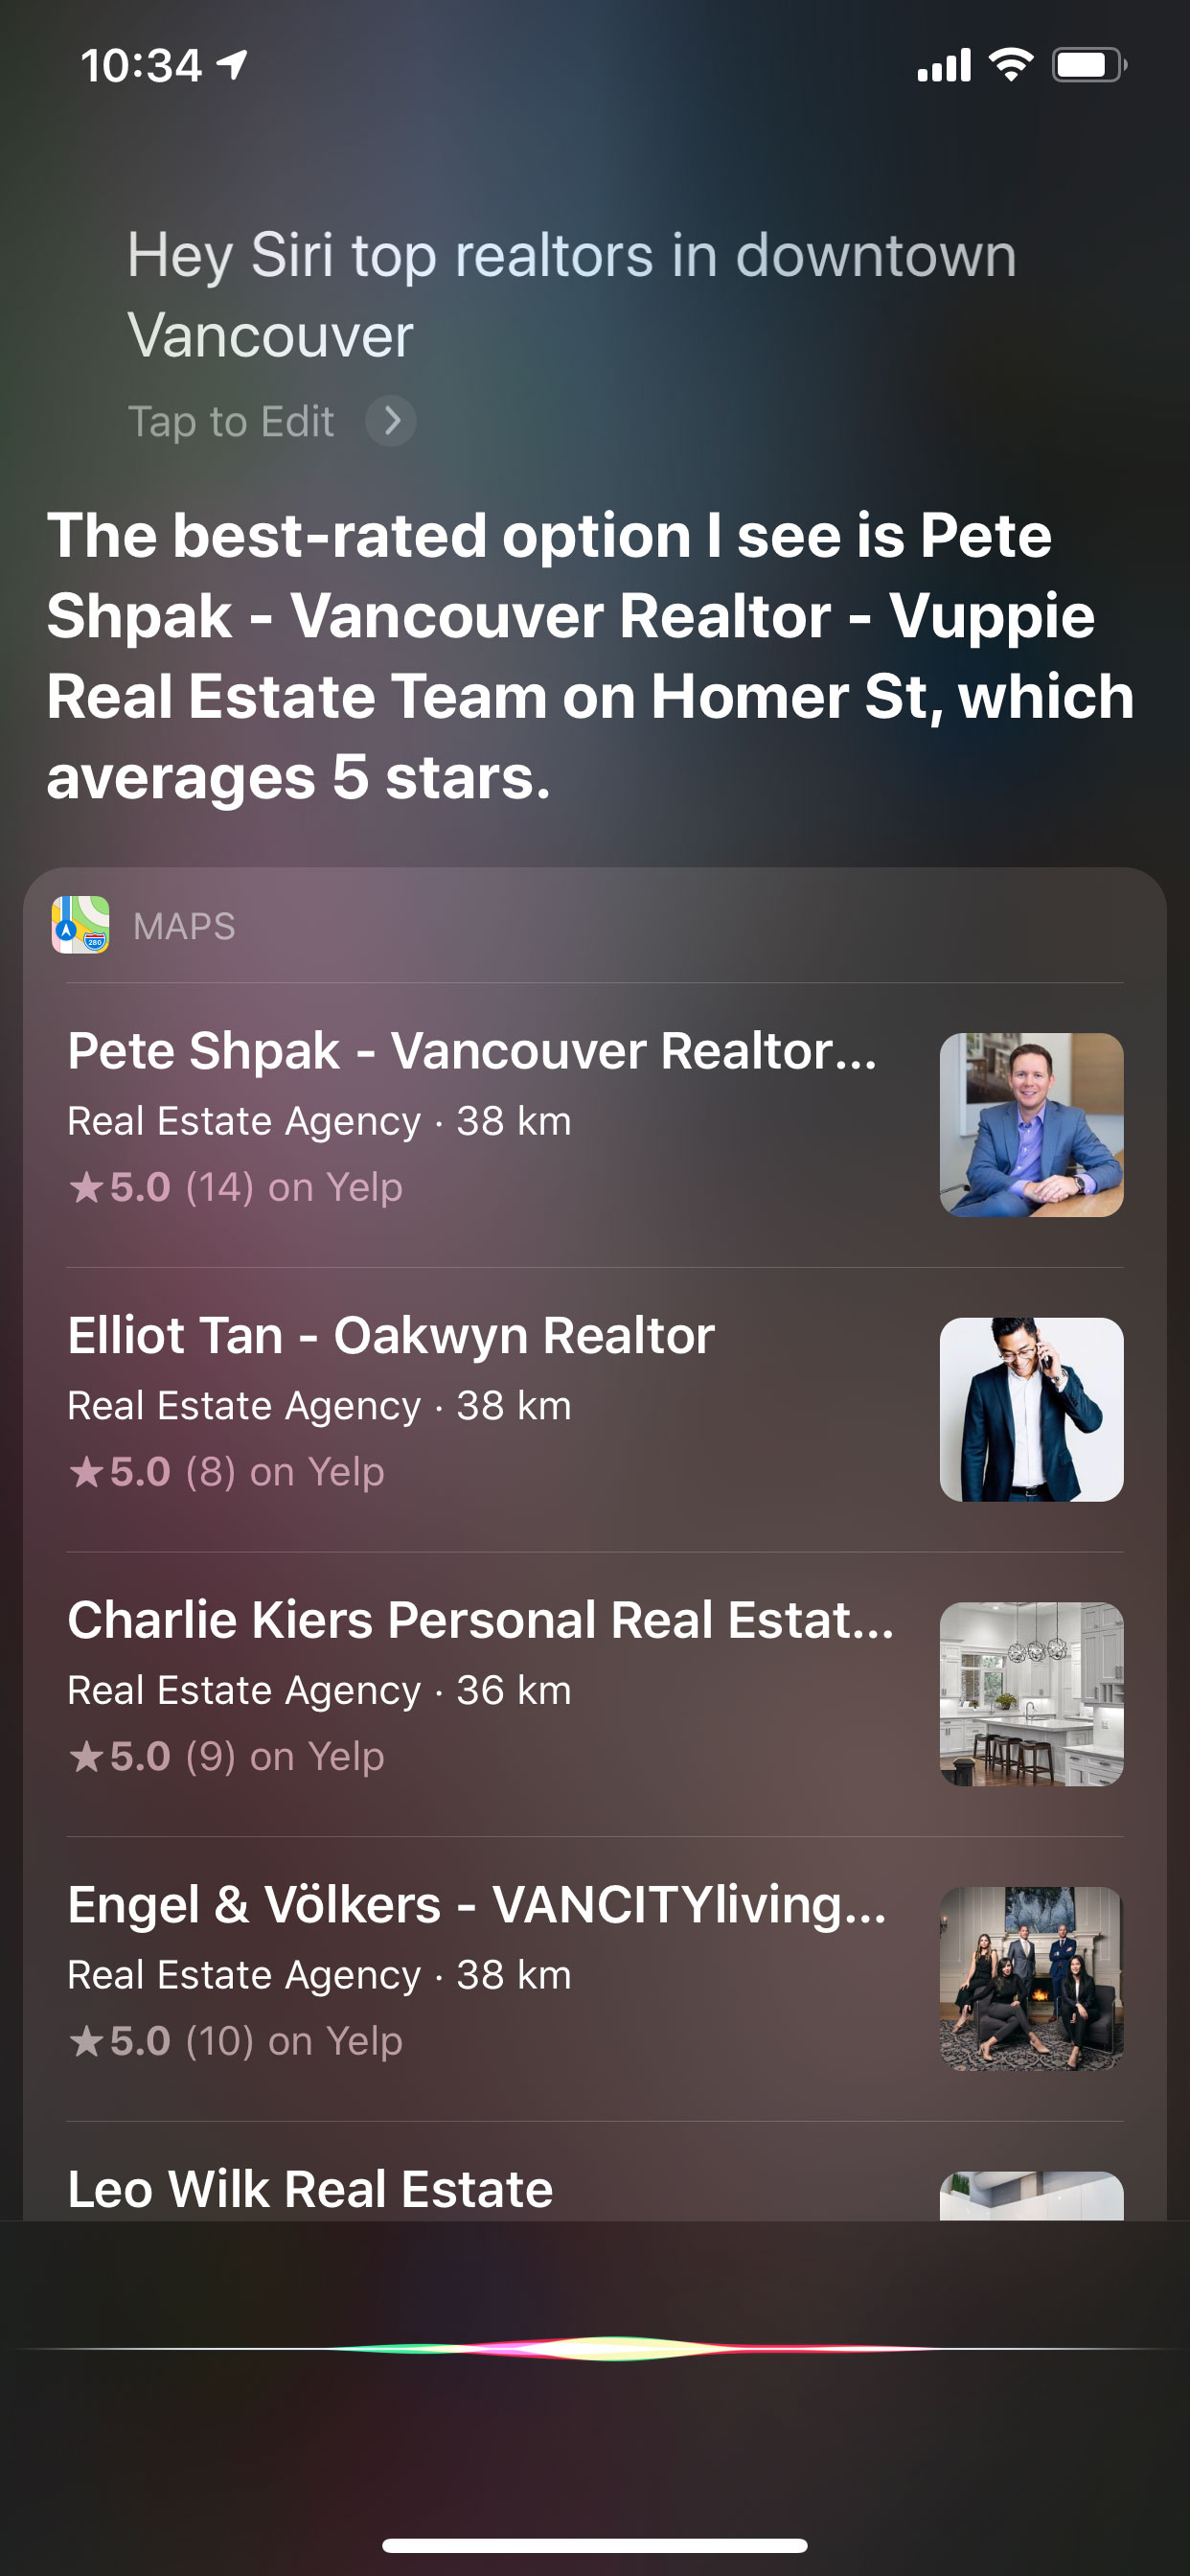 Voice Search - Top Realtors in Downtown Vancouver